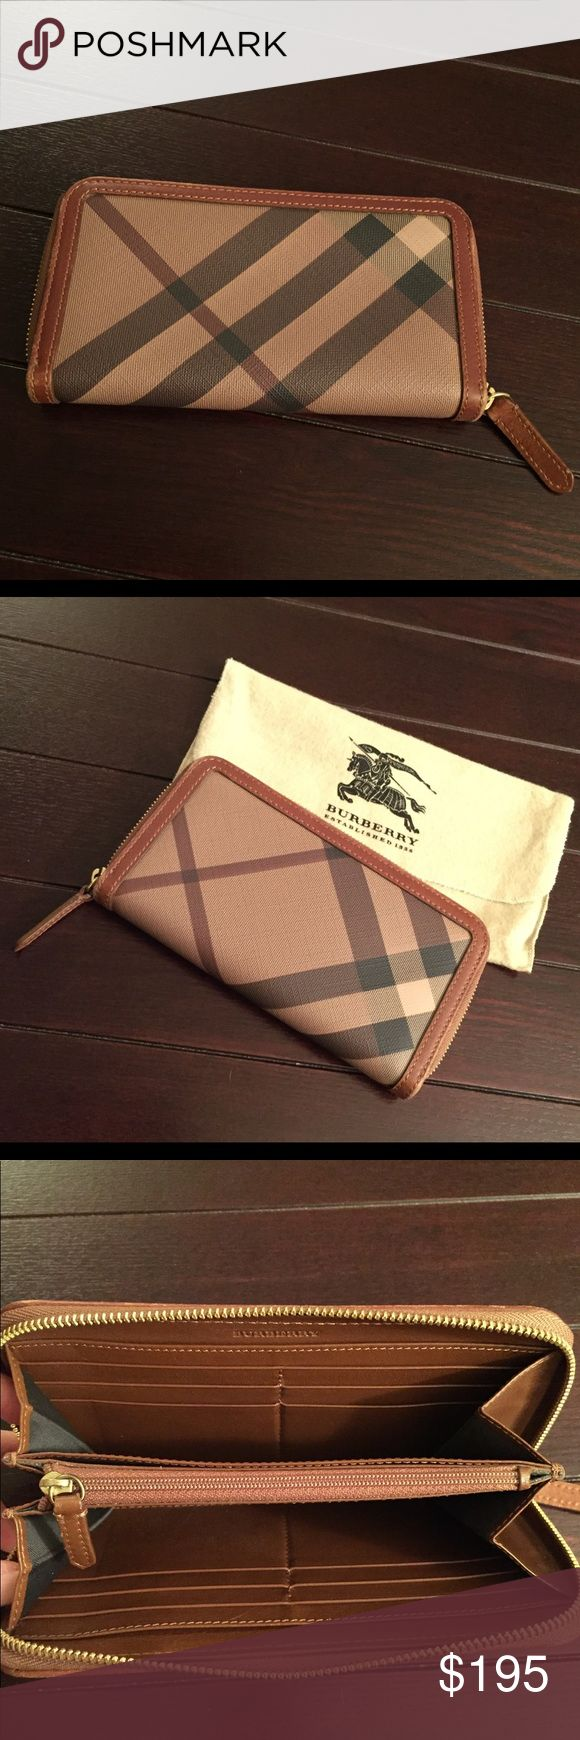 """BURBERRY Smoked Check Zip Around Wallet Brown BURBERRY Smoked Check Zip Around Wallet Brown  * Brand: Burberry * Style: Smoked Check Zip Wallet * Color: Chocolate/Black/Tan * Measurements: 7.5"""" x 4"""" x 1"""" * Material: PVC/ Leather Trim * Features: 12 credit card slots, 2 open compartments, zippered center pocket, 2 bills sleeves * Very good pre-owned condition with signs of normal use on edges of wallet; carried for about a year and stored in storage bag Burberry Bags Wallets"""